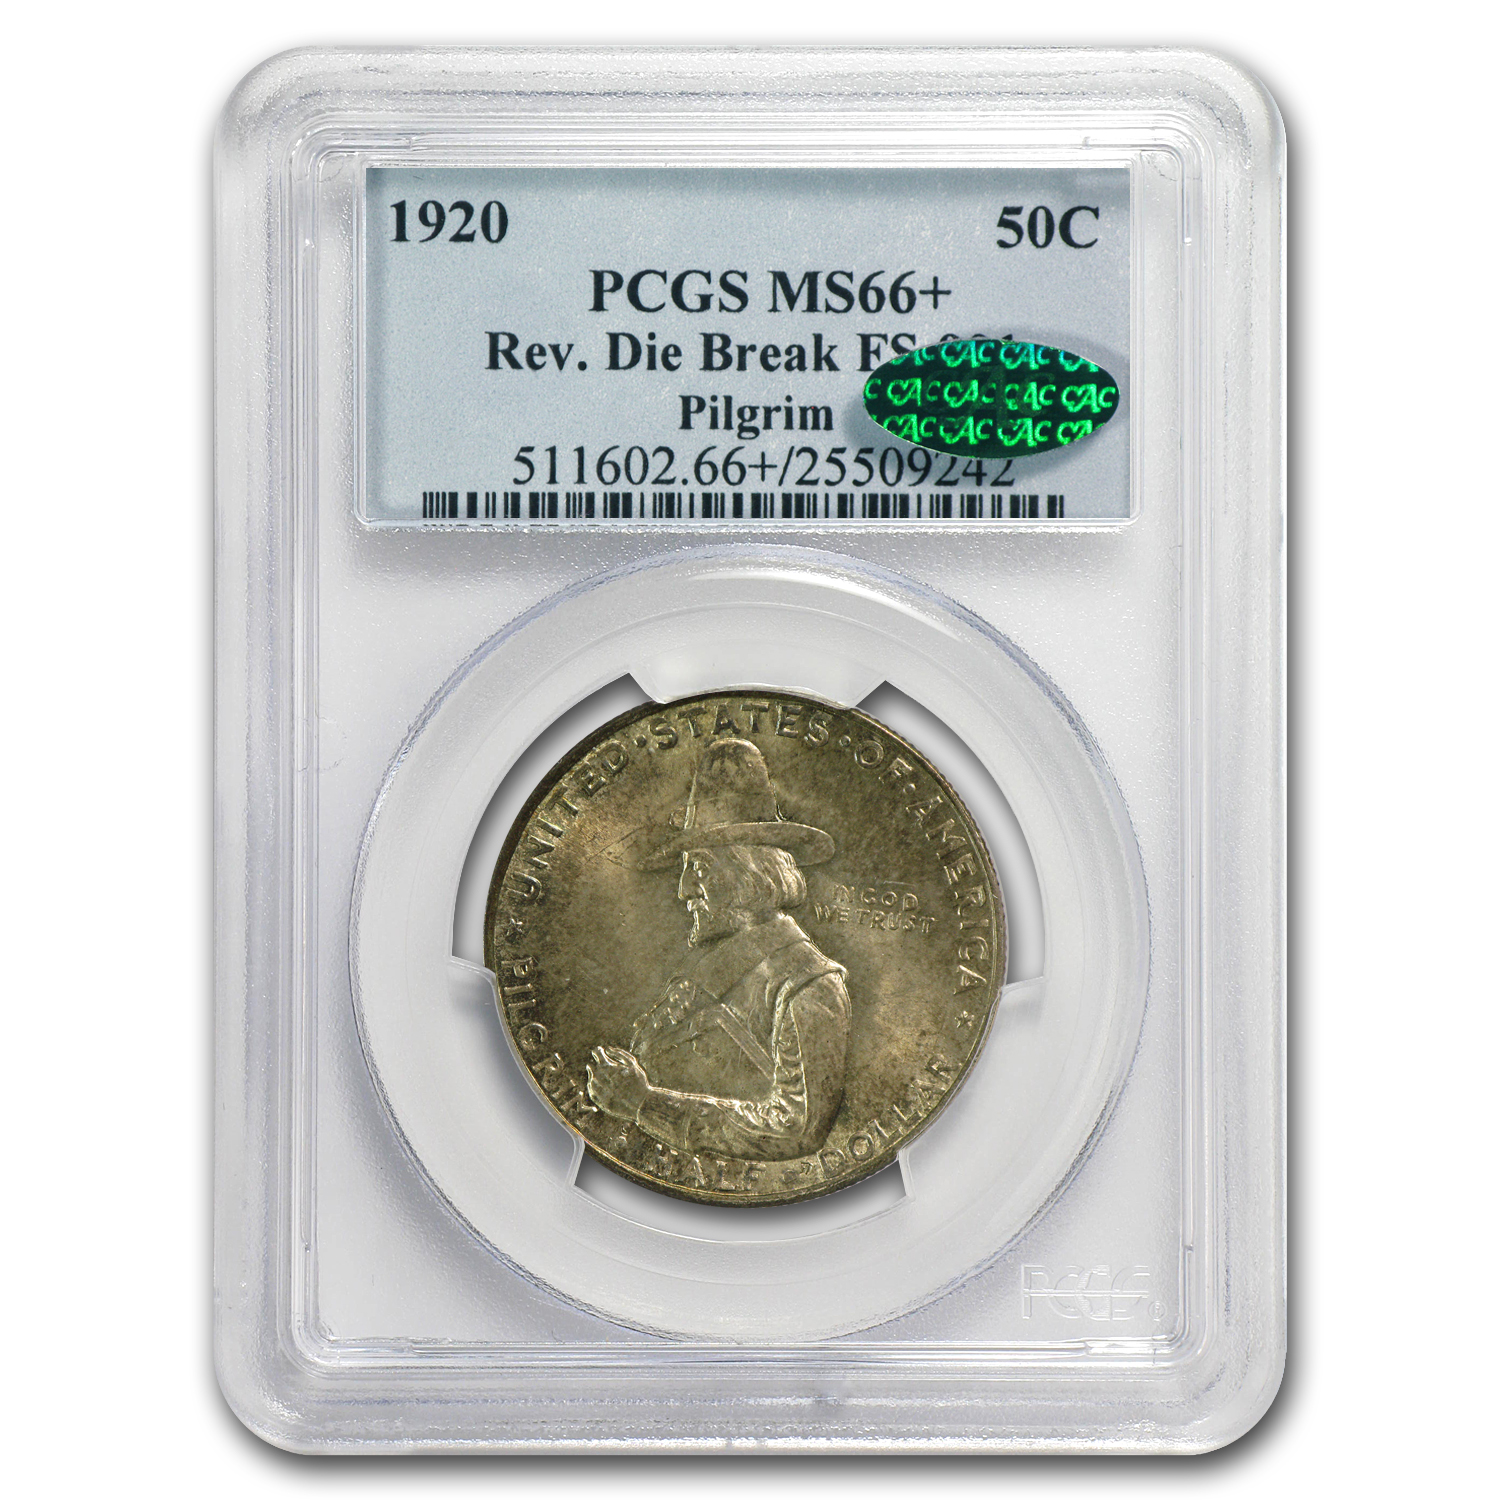 1920 Pilgrim MS-66+ PCGS - CAC -Die Break Variety- Finest Known!